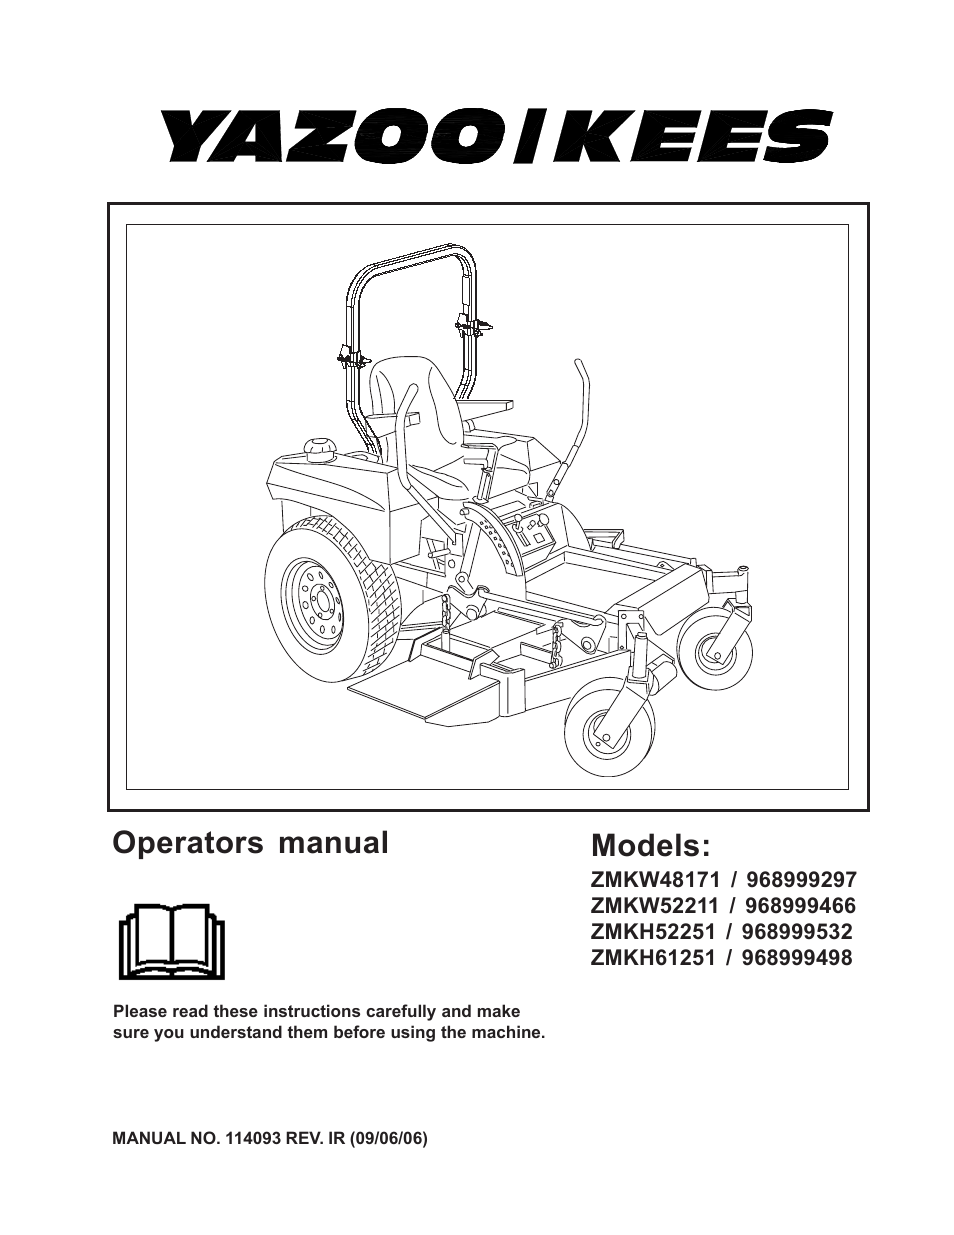 Yazoo  Kees Zmkw48171    968999297 User Manual